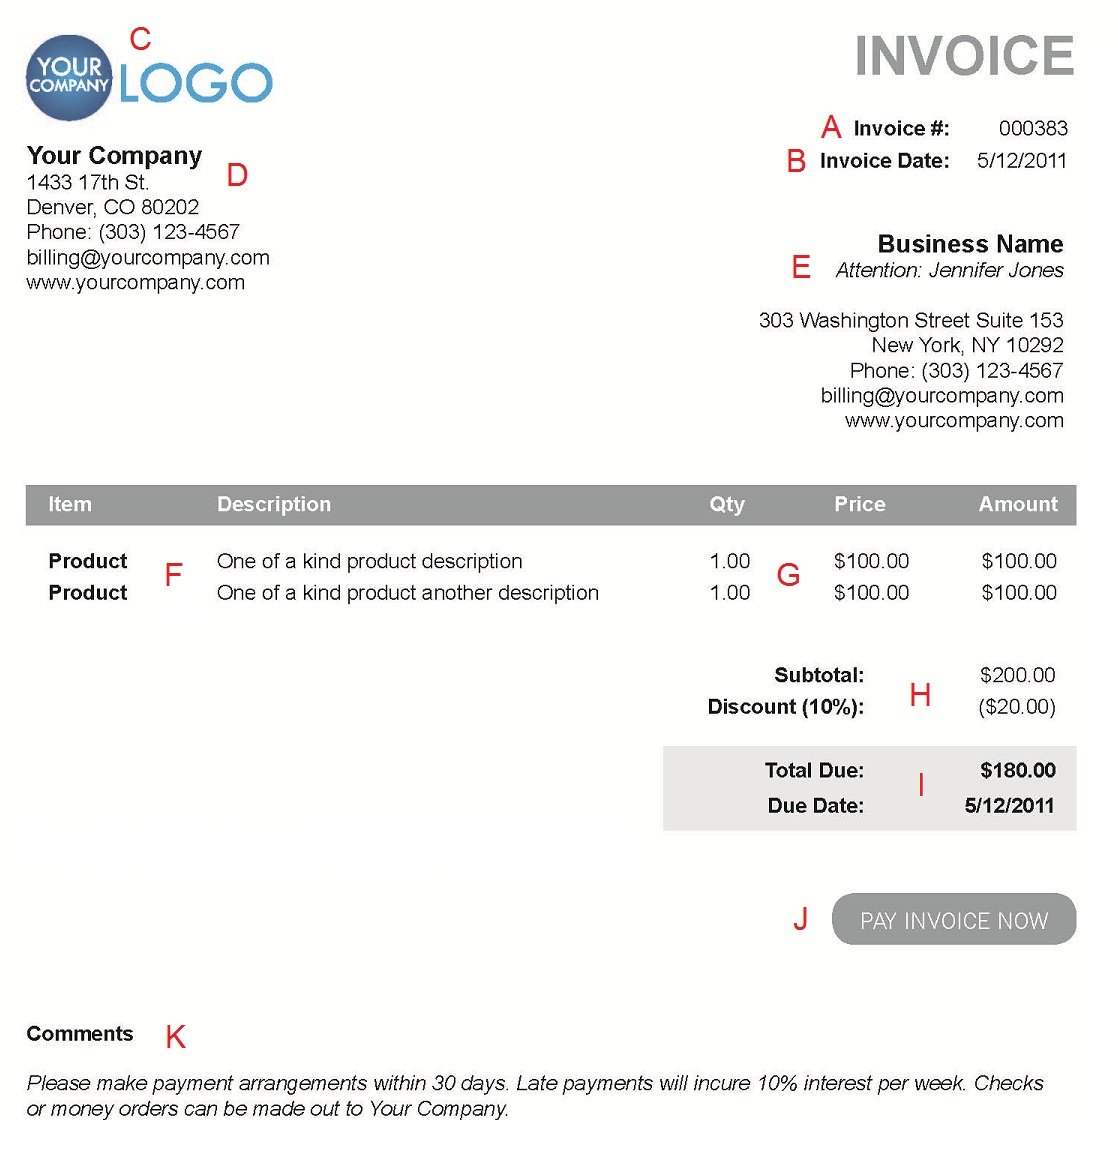 Hucareus  Terrific The  Different Sections Of An Electronic Payment Invoice With Exciting A  With Beauteous Invoice App For Ipad Also Invoice Templaye In Addition Past Due Invoices And Commercial Invoices As Well As Fedex Duty And Tax Invoice Pay Online Additionally How To Send A Invoice On Paypal From Paysimplecom With Hucareus  Exciting The  Different Sections Of An Electronic Payment Invoice With Beauteous A  And Terrific Invoice App For Ipad Also Invoice Templaye In Addition Past Due Invoices From Paysimplecom